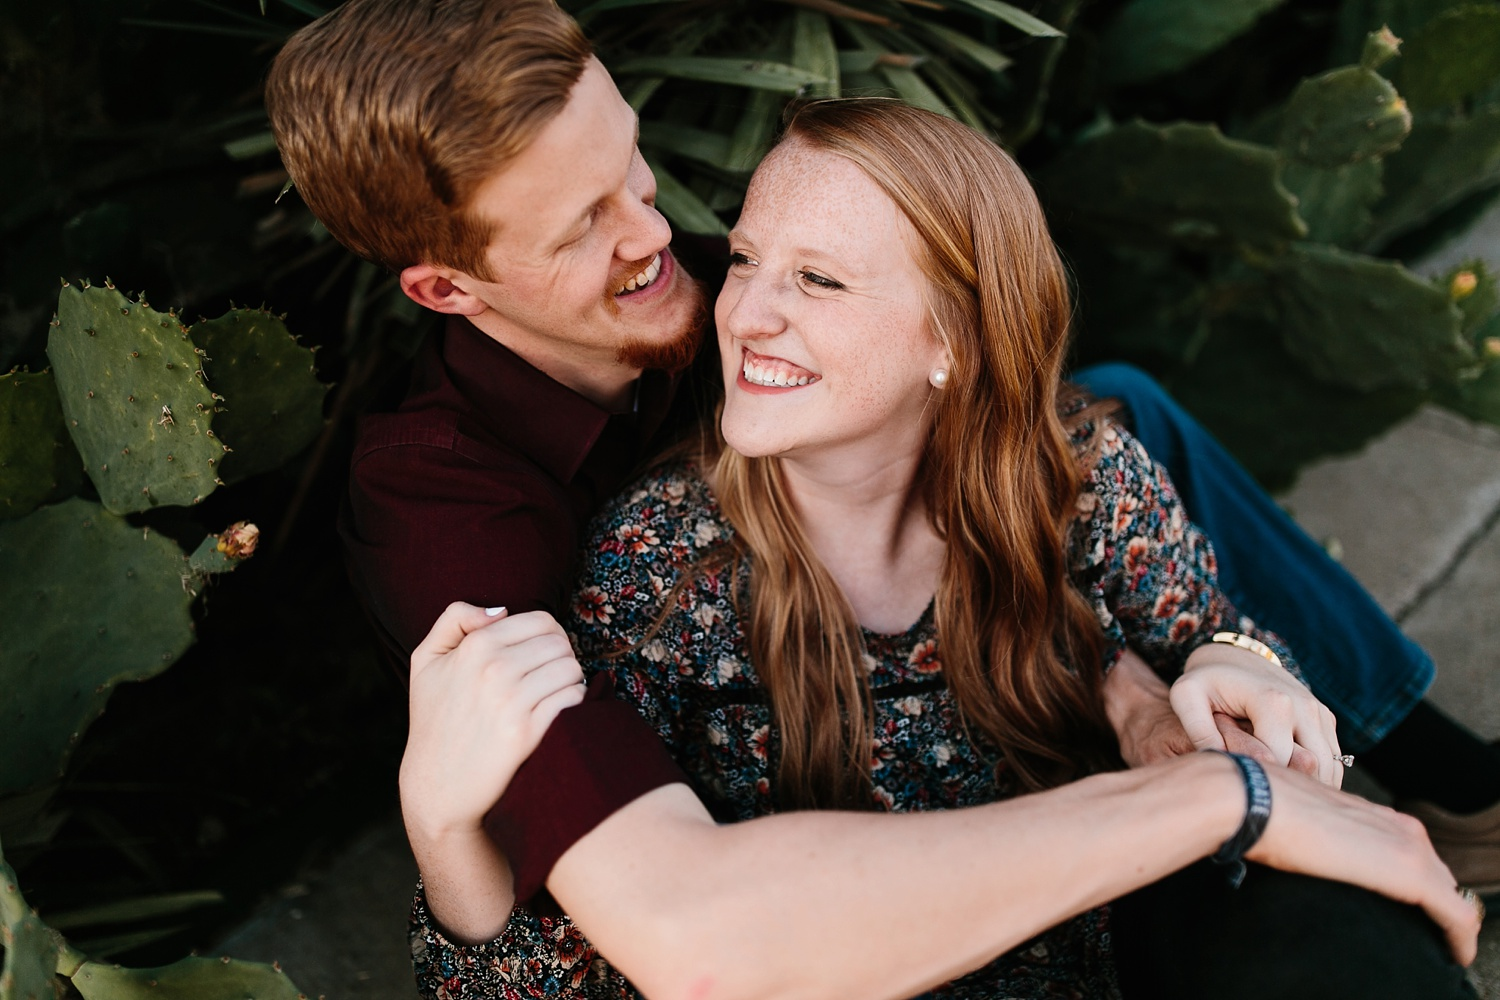 Kayla + Alex _ a joyful and loving engagement shoot in Waco, Texas by North Texas Wedding Photographer Rachel Meagan Photography _25